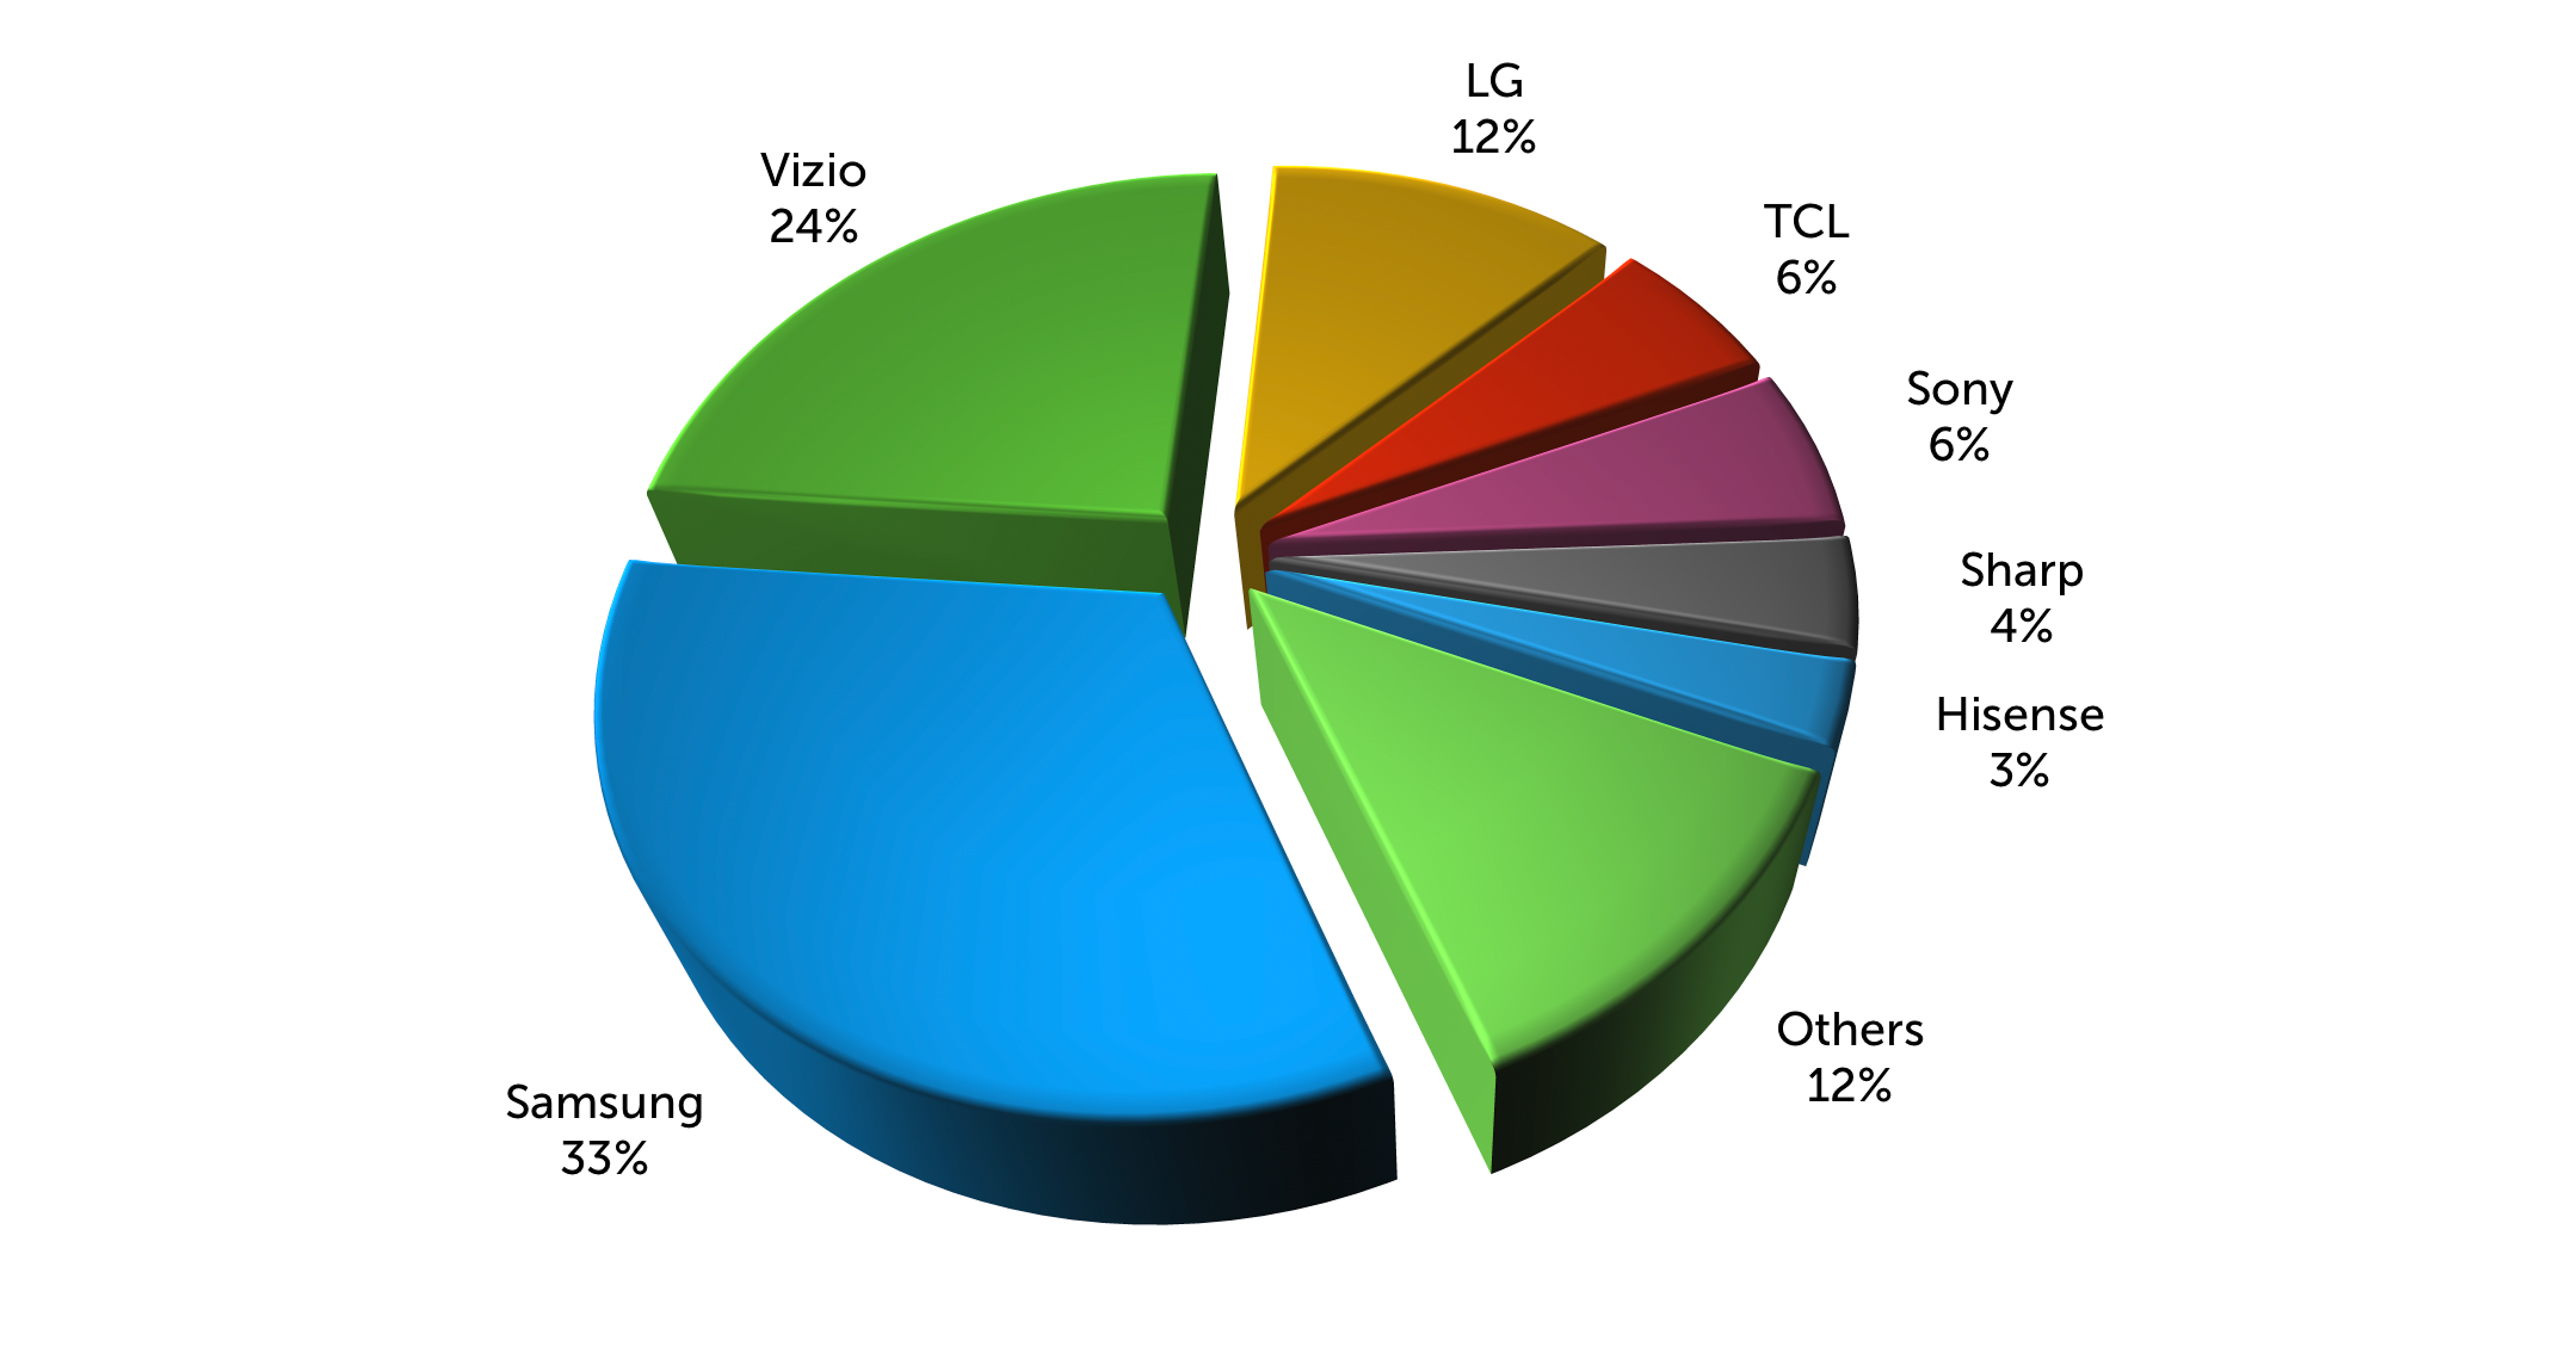 U.S. Smart TV Market Share per Wakefield Research. Image: Digitized House